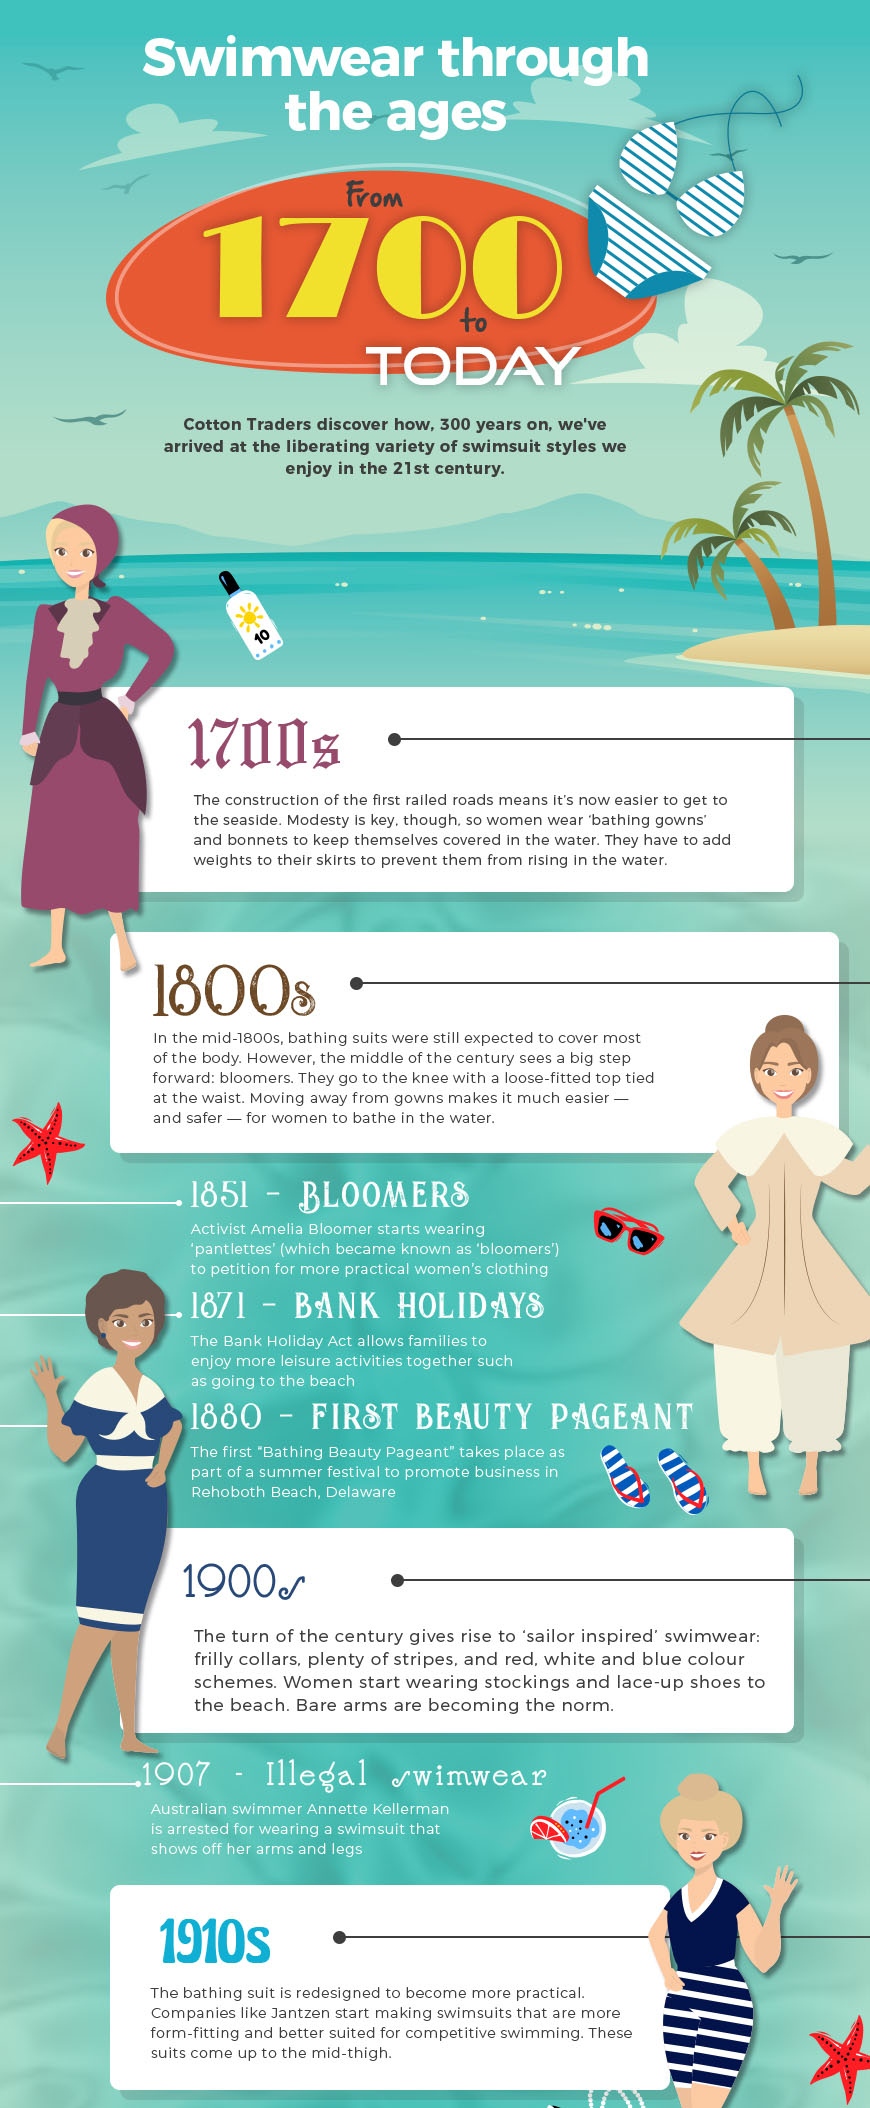 Swimwear Through the Ages by Cotton Traders - Part 1